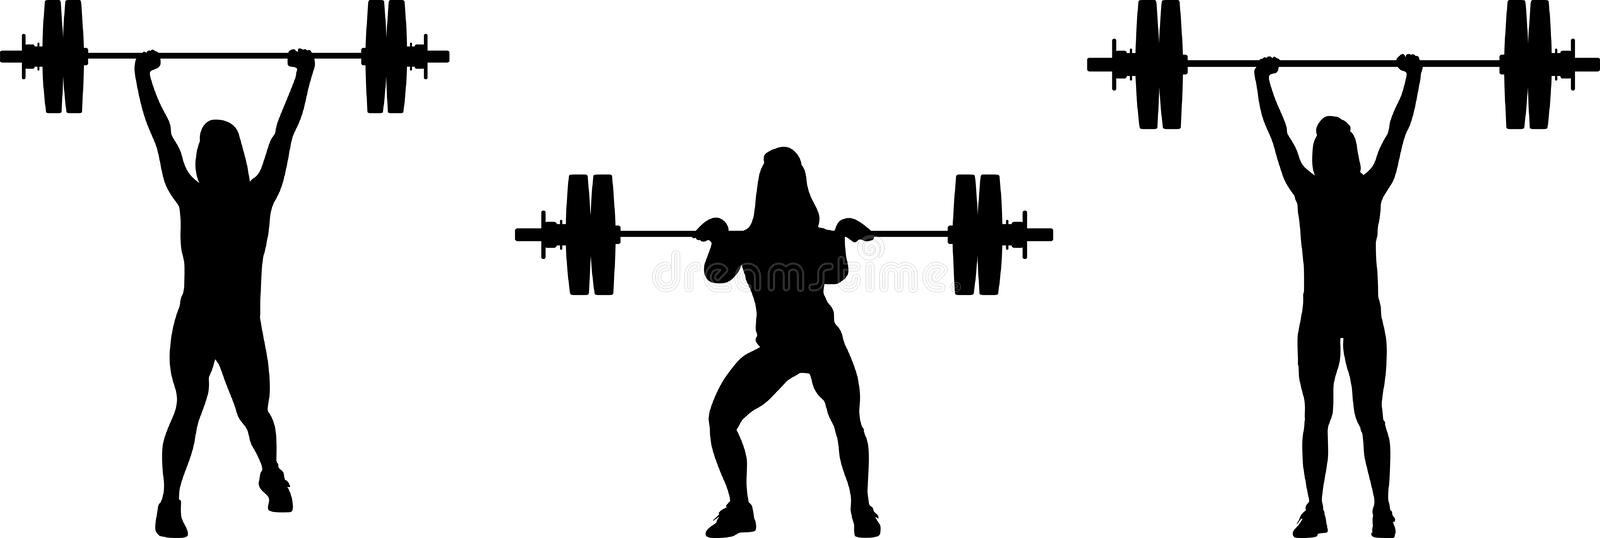 Girl in three different poses weight lifting. girl raises weights vector illustration